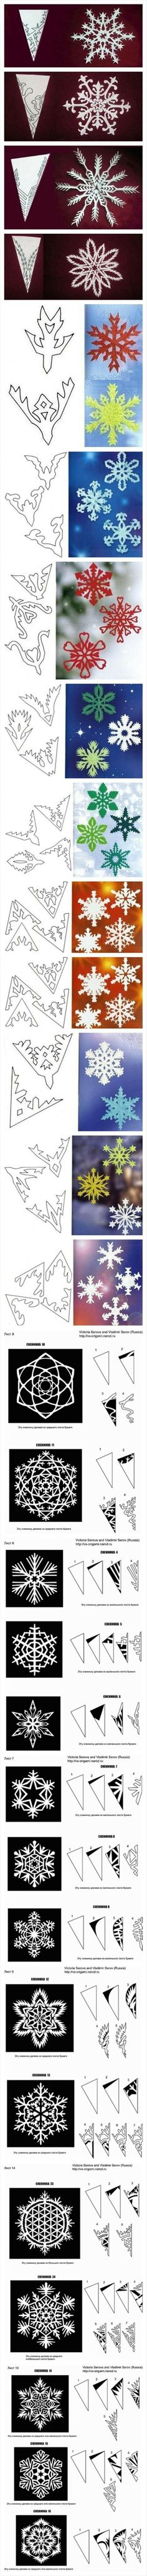 christmas craft ideas (23)